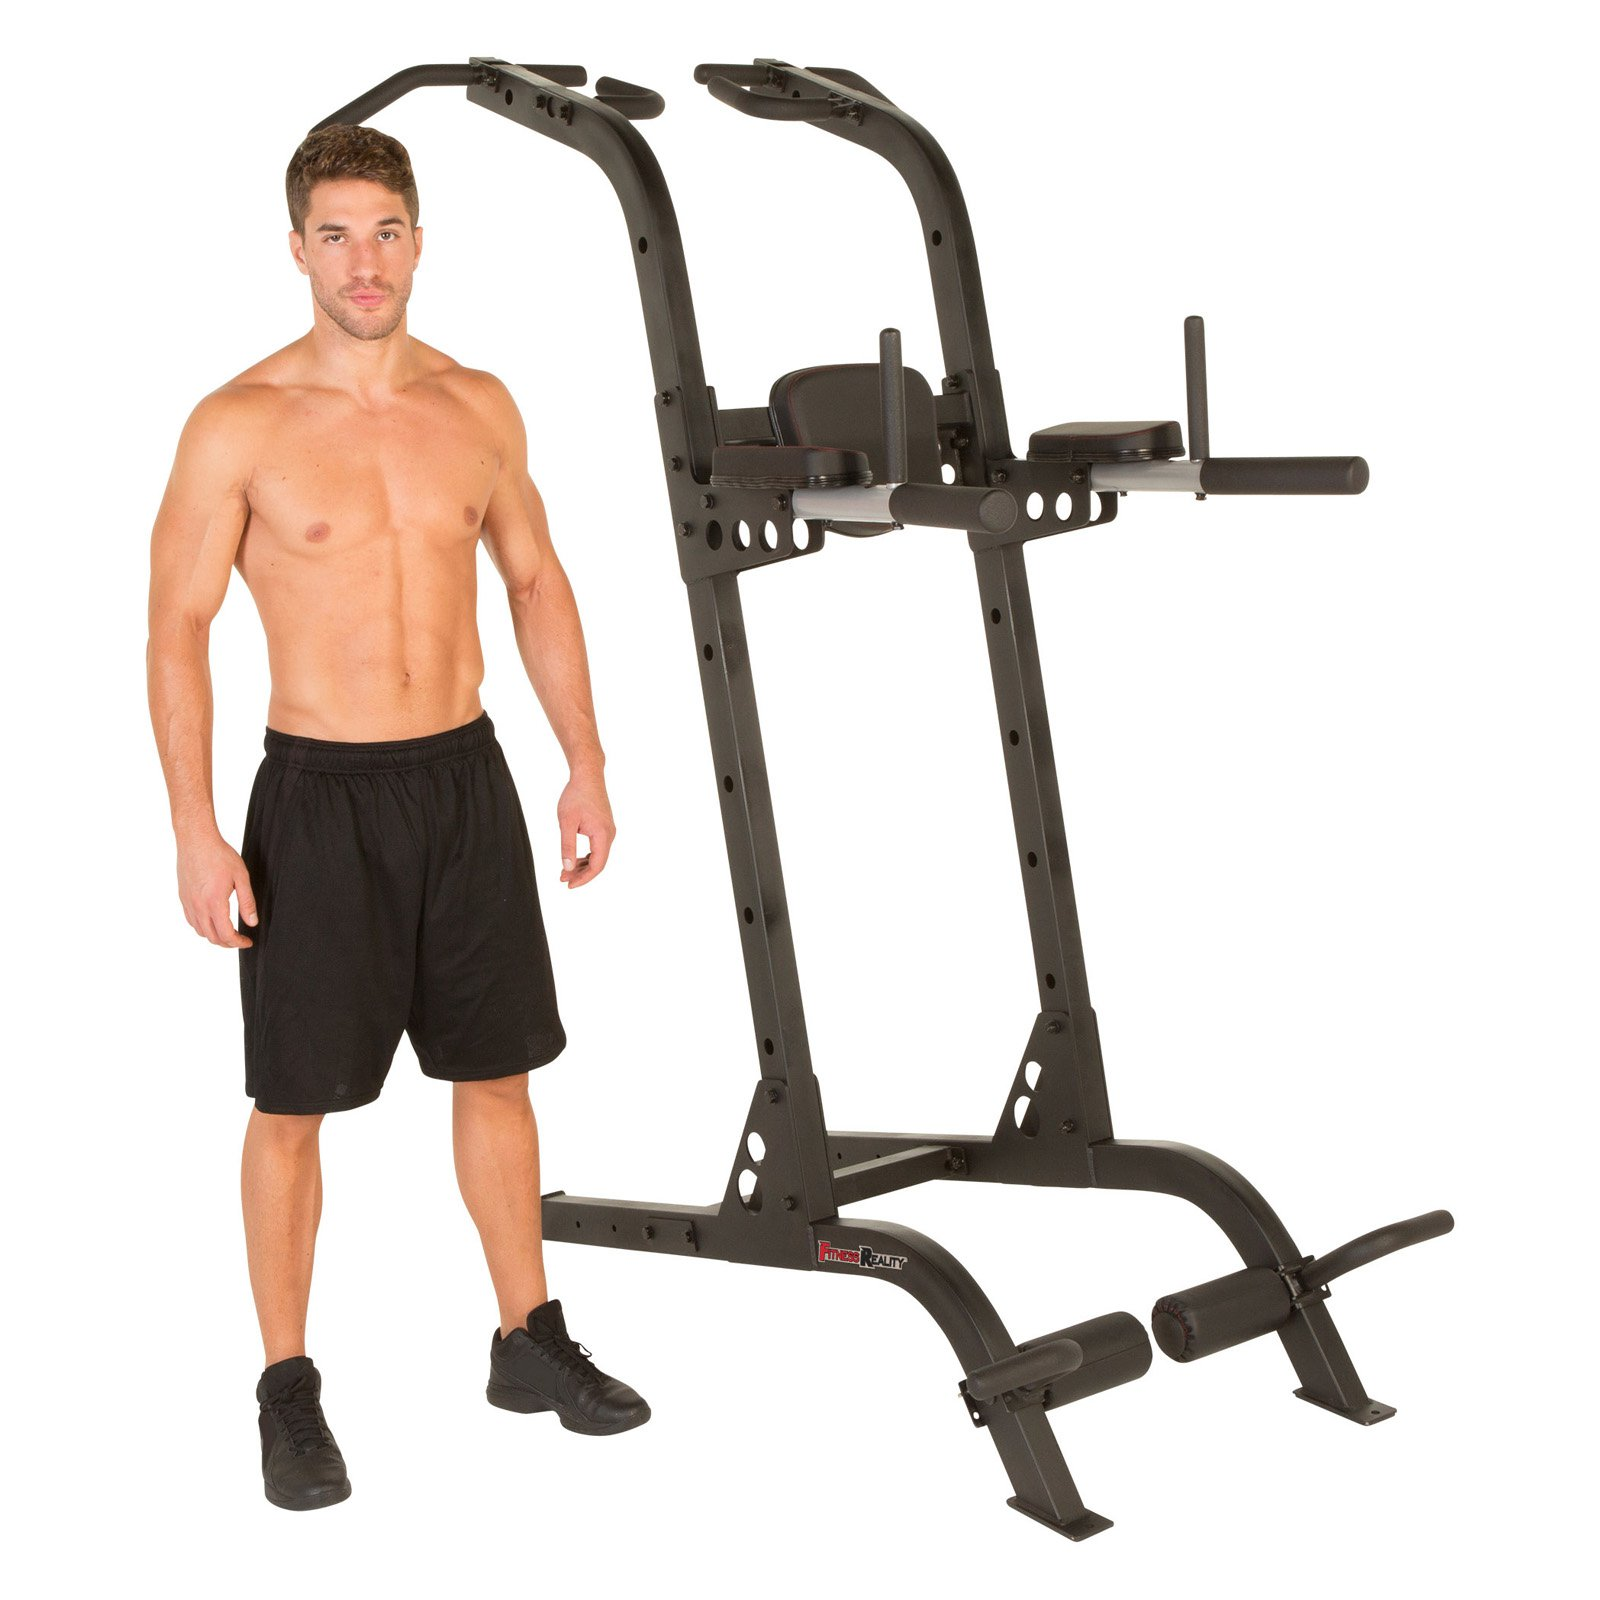 FITNESS REALITY X-Class Multi-Function Power Tower (Box 1 of 2)